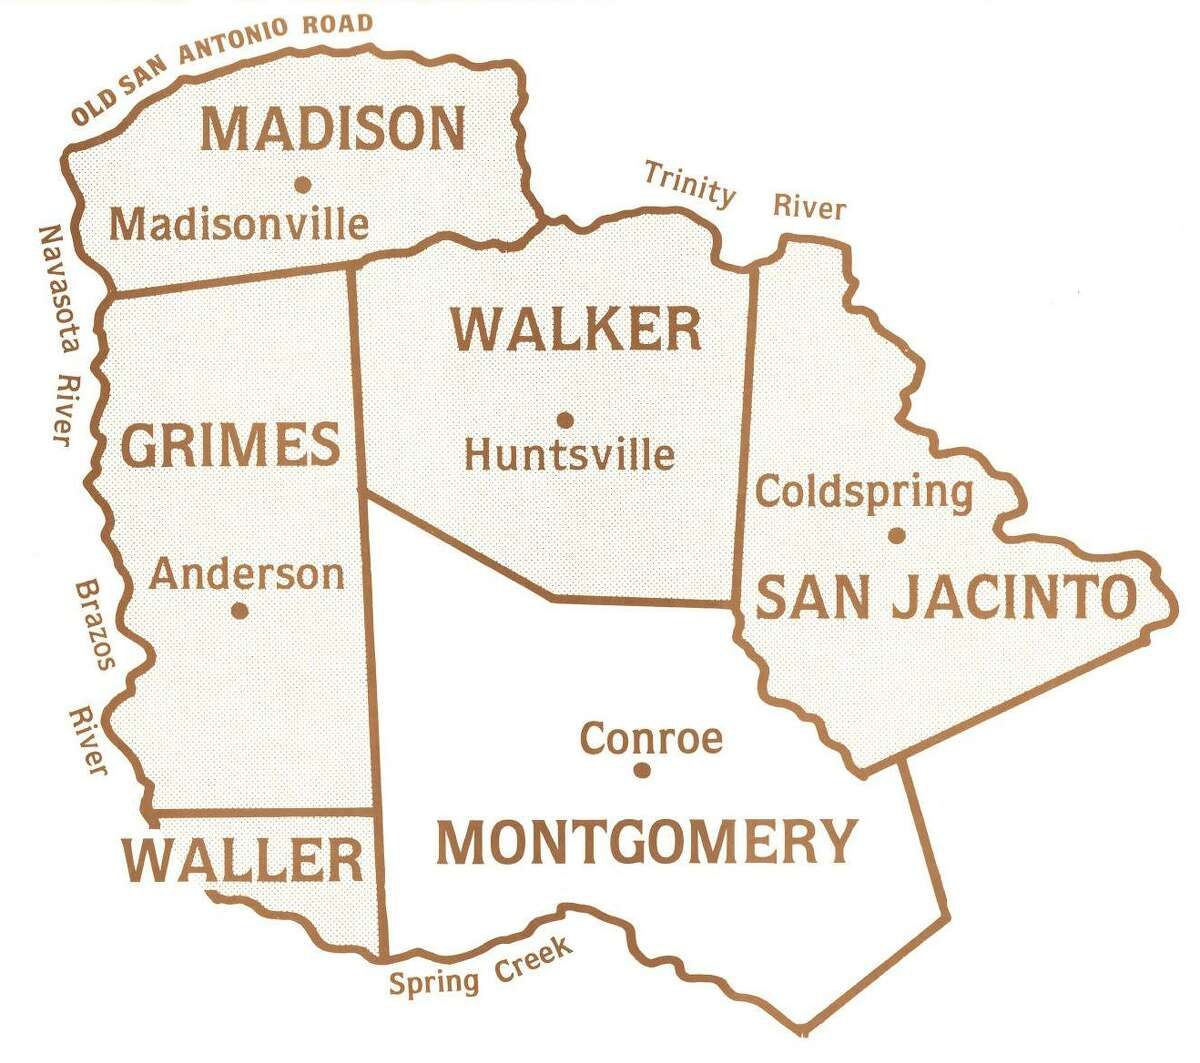 Original county boundaries of Montgomery County included Grimes, Walker, San Jacinto and a portion of Madison and Waller counties. Montgomery County was formed on Dec. 14, 1837. Map from the Montgomery County Historical Commission.